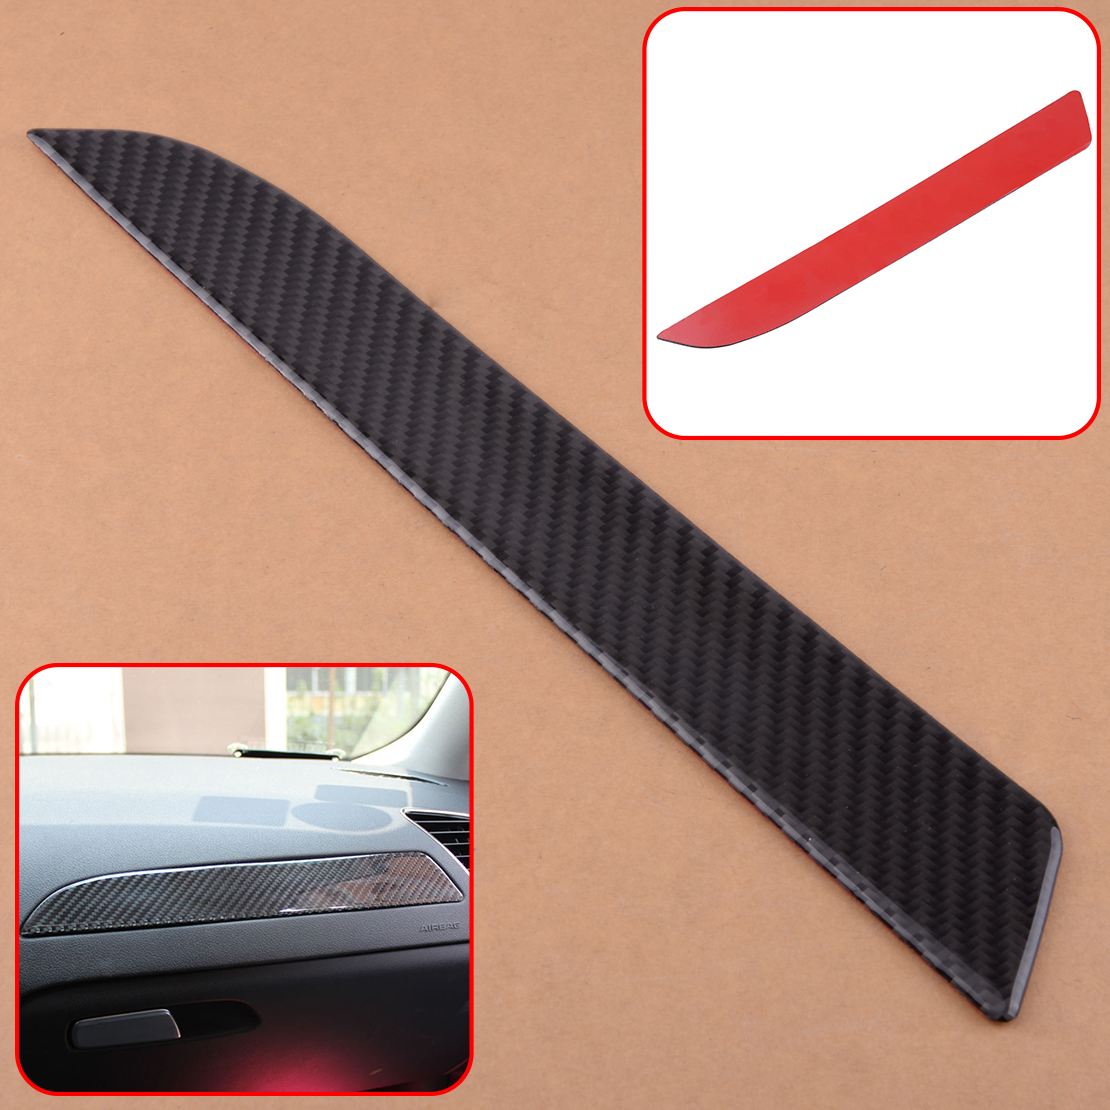 DWCX Carbon Fiber Car Interior Co pilot Console Panel Glove Box Cover Trim for Audi A4 B8 2009 2010 2011 2012 2013 2014 2015